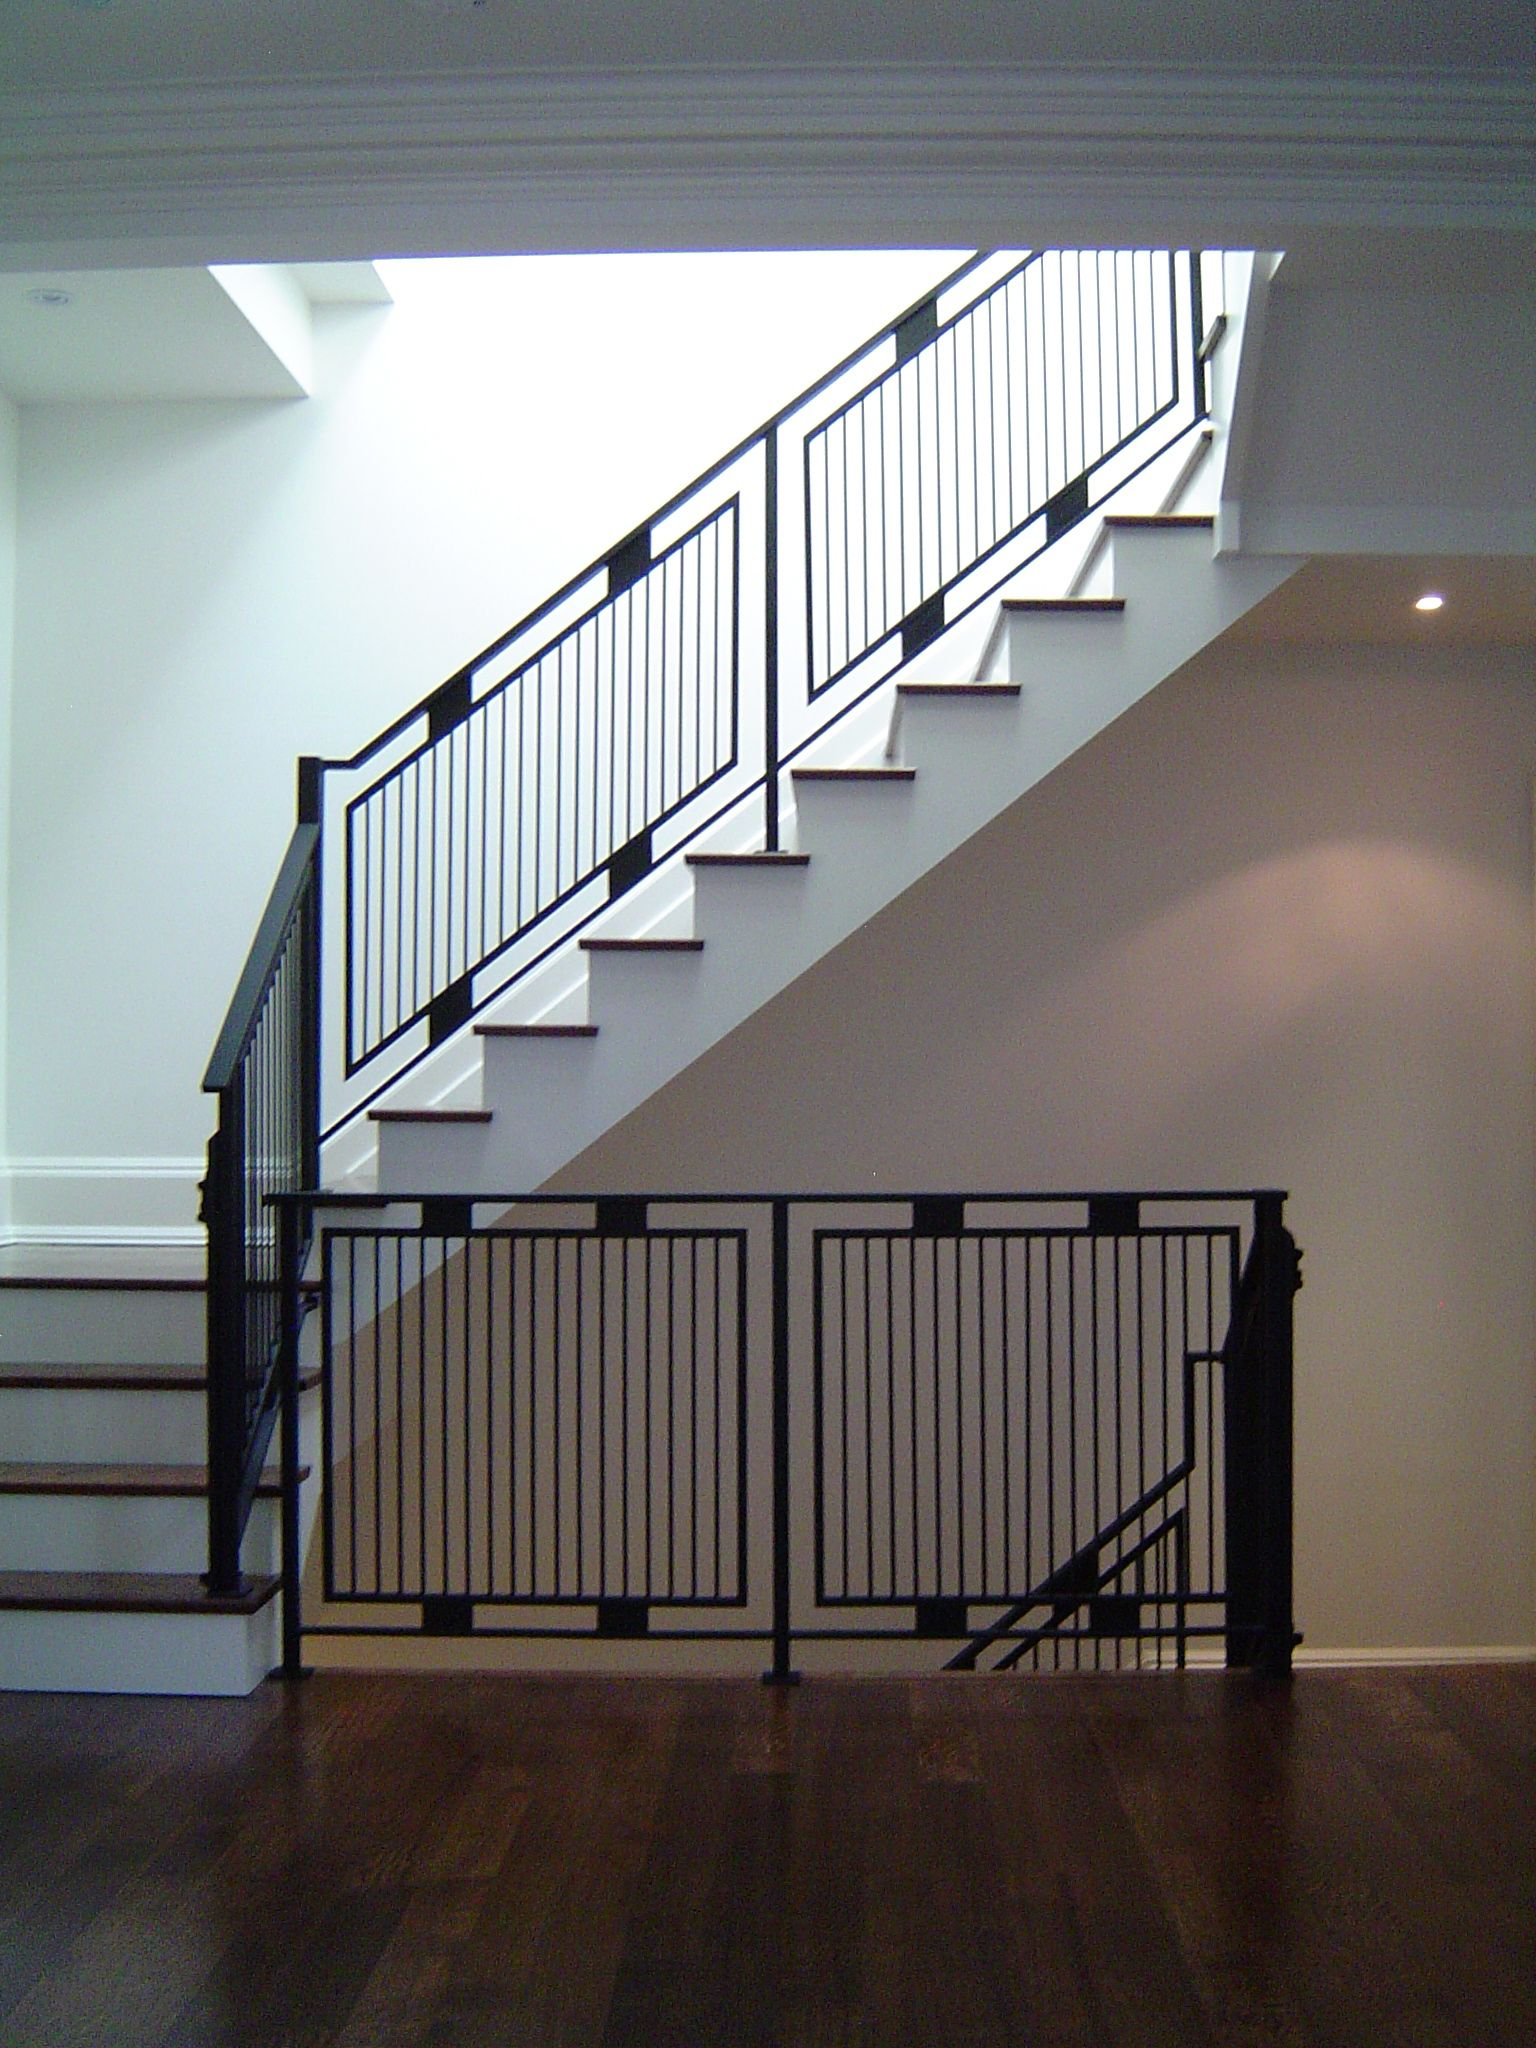 Best Light Weight Steel Tube Railings From The Basement To The 400 x 300